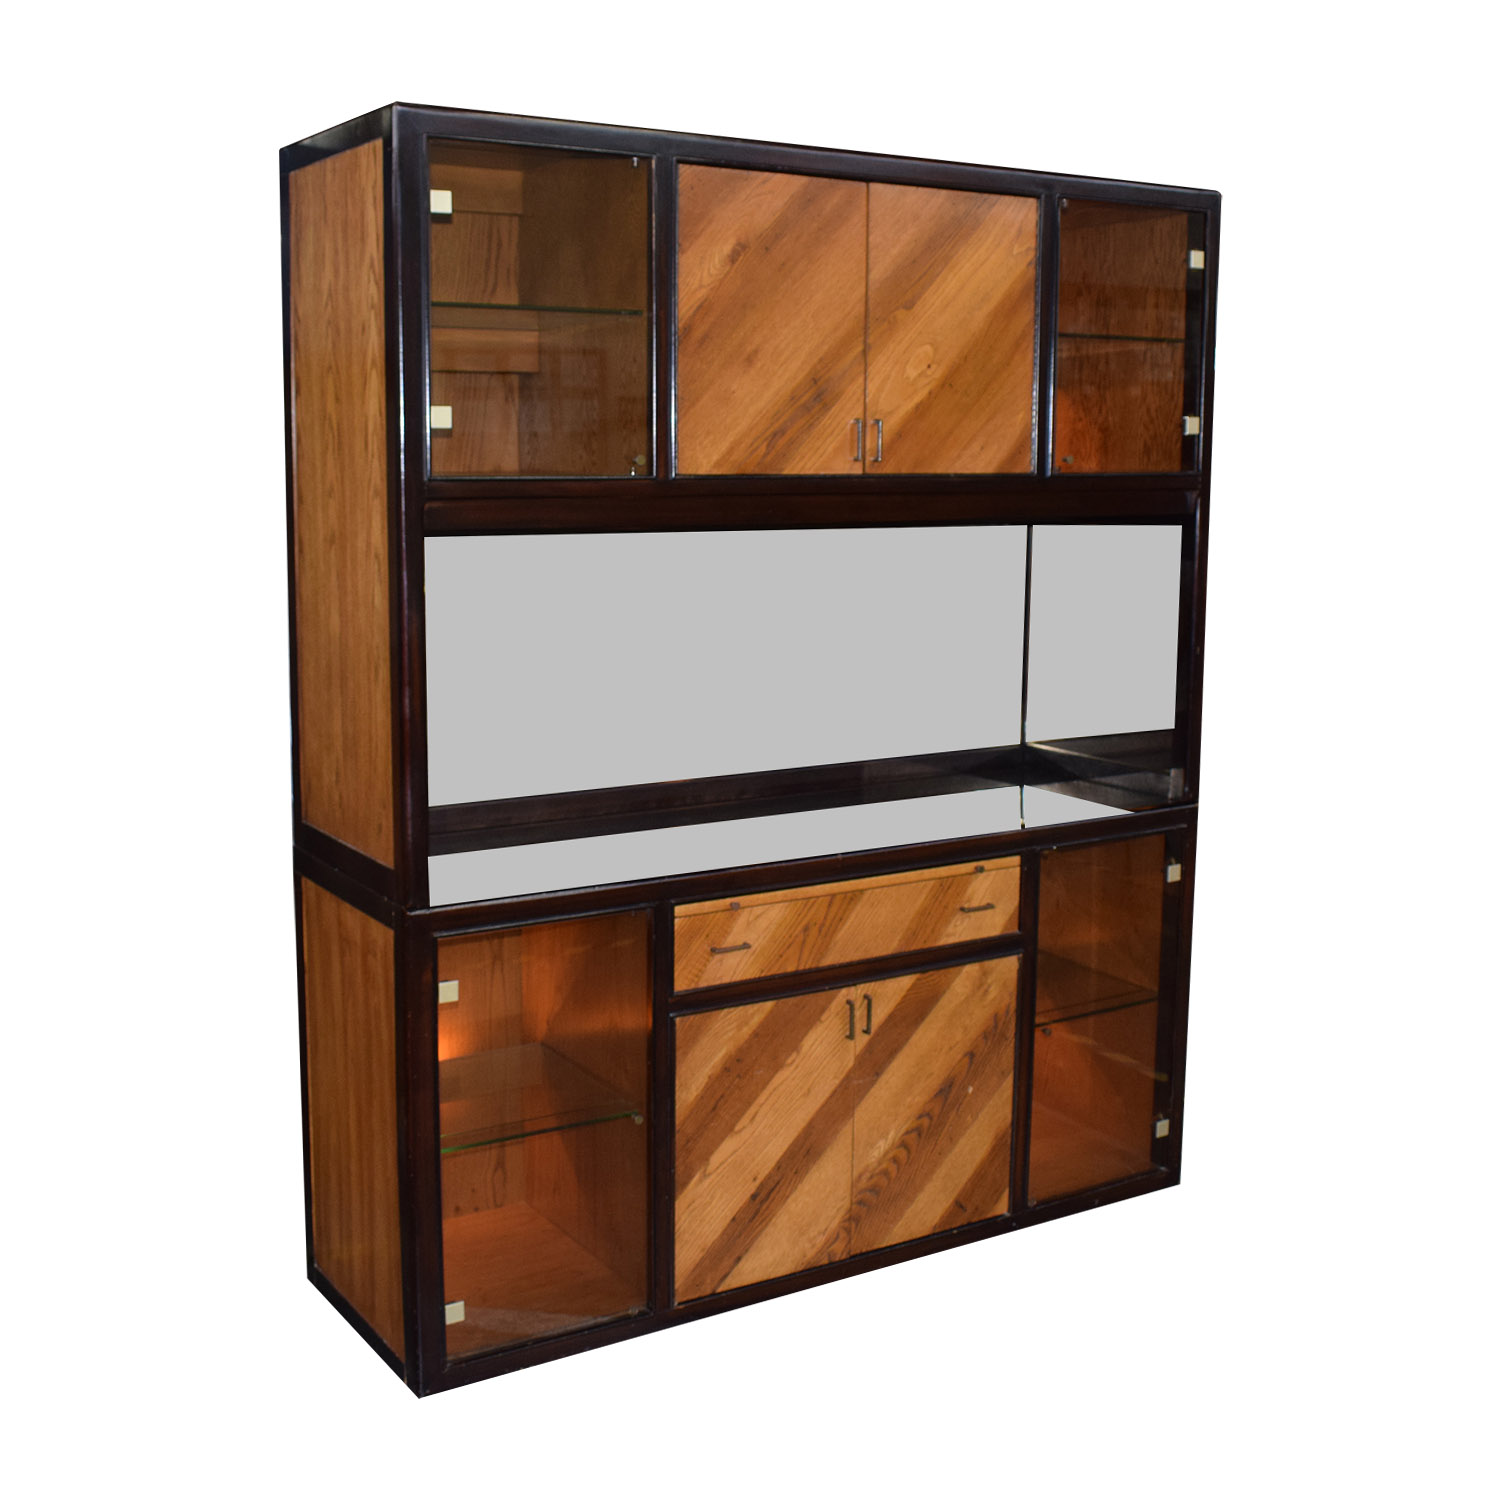 Peck and Hills Furniture Peck and Hills Furniture Wood and Glass Mirrored Breakfront coupon